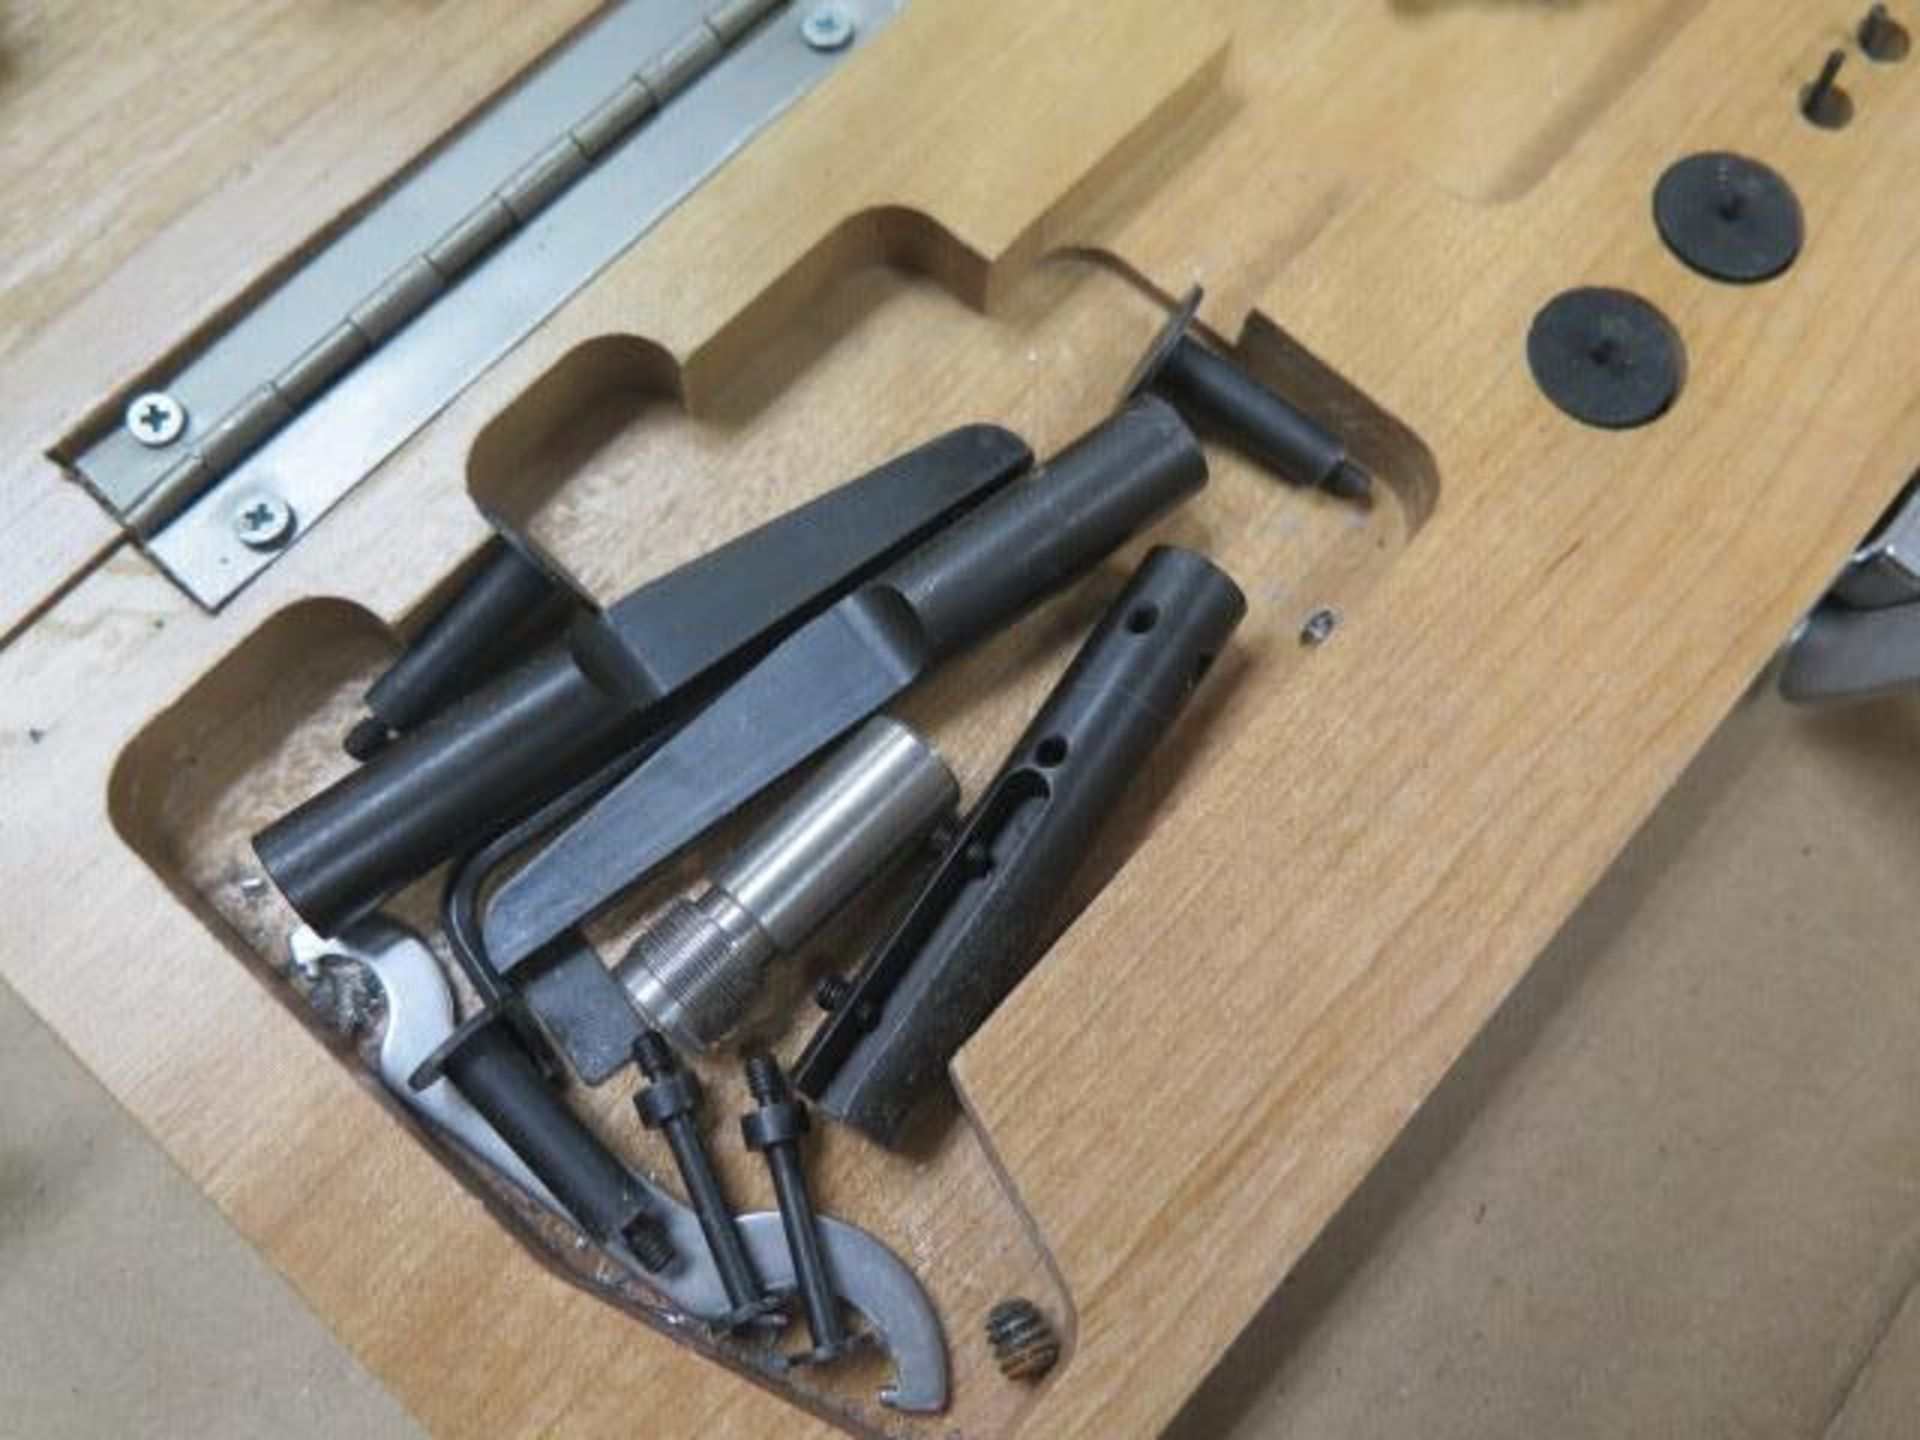 """6""""' Dial Calipers (3) w/ Accessory Blade Sets (SOLD AS-IS - NO WARRANTY) - Image 7 of 8"""